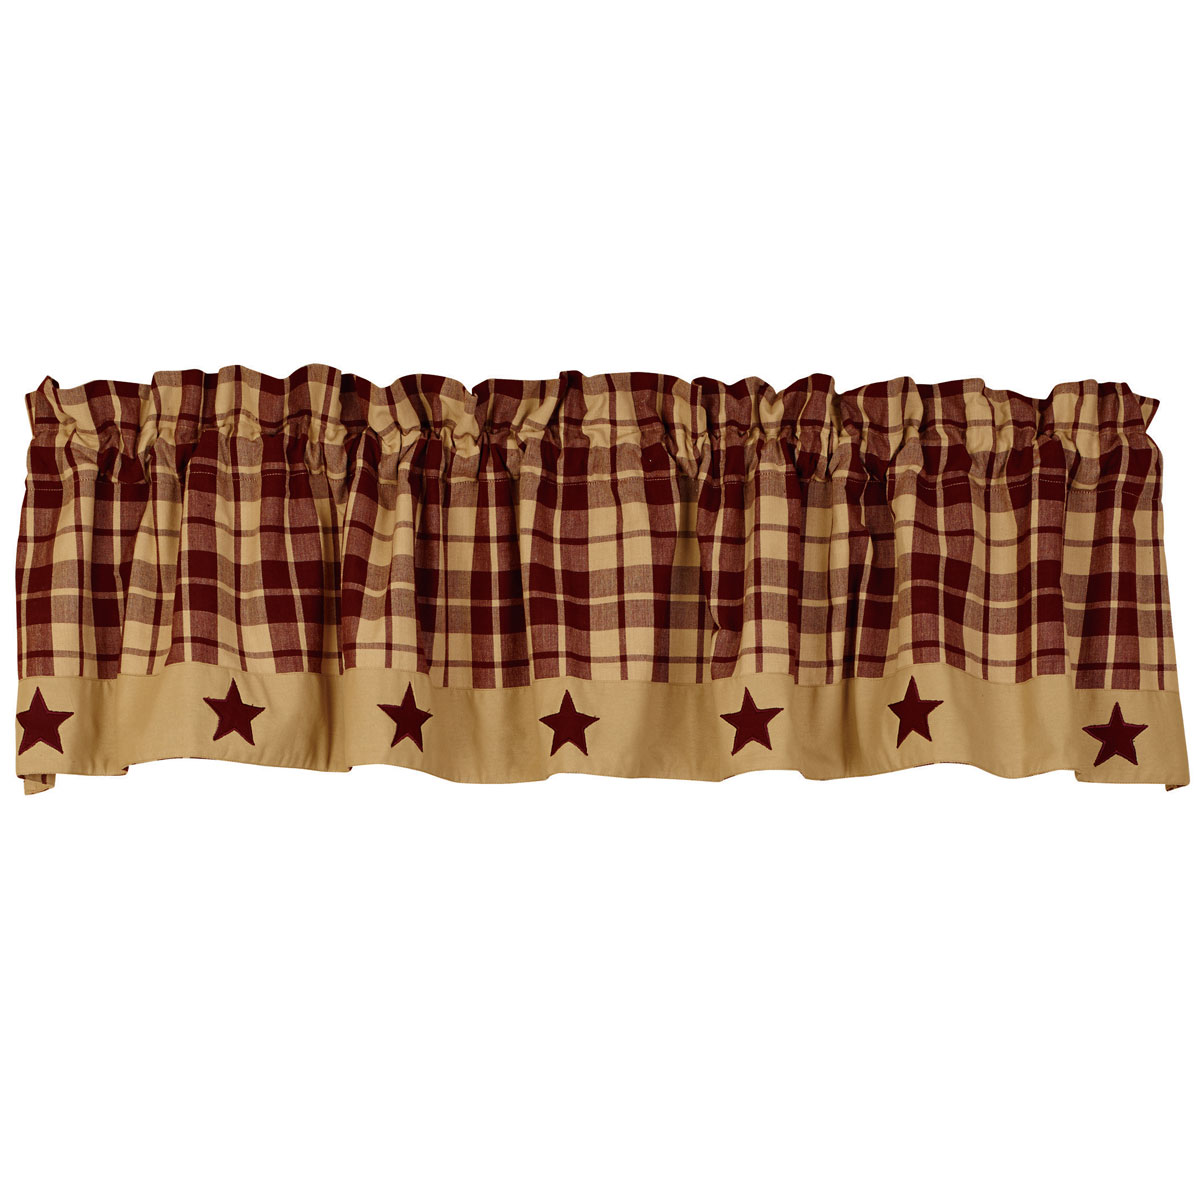 Primitive Farmhouse Star Appliqued Lined Valance, Black